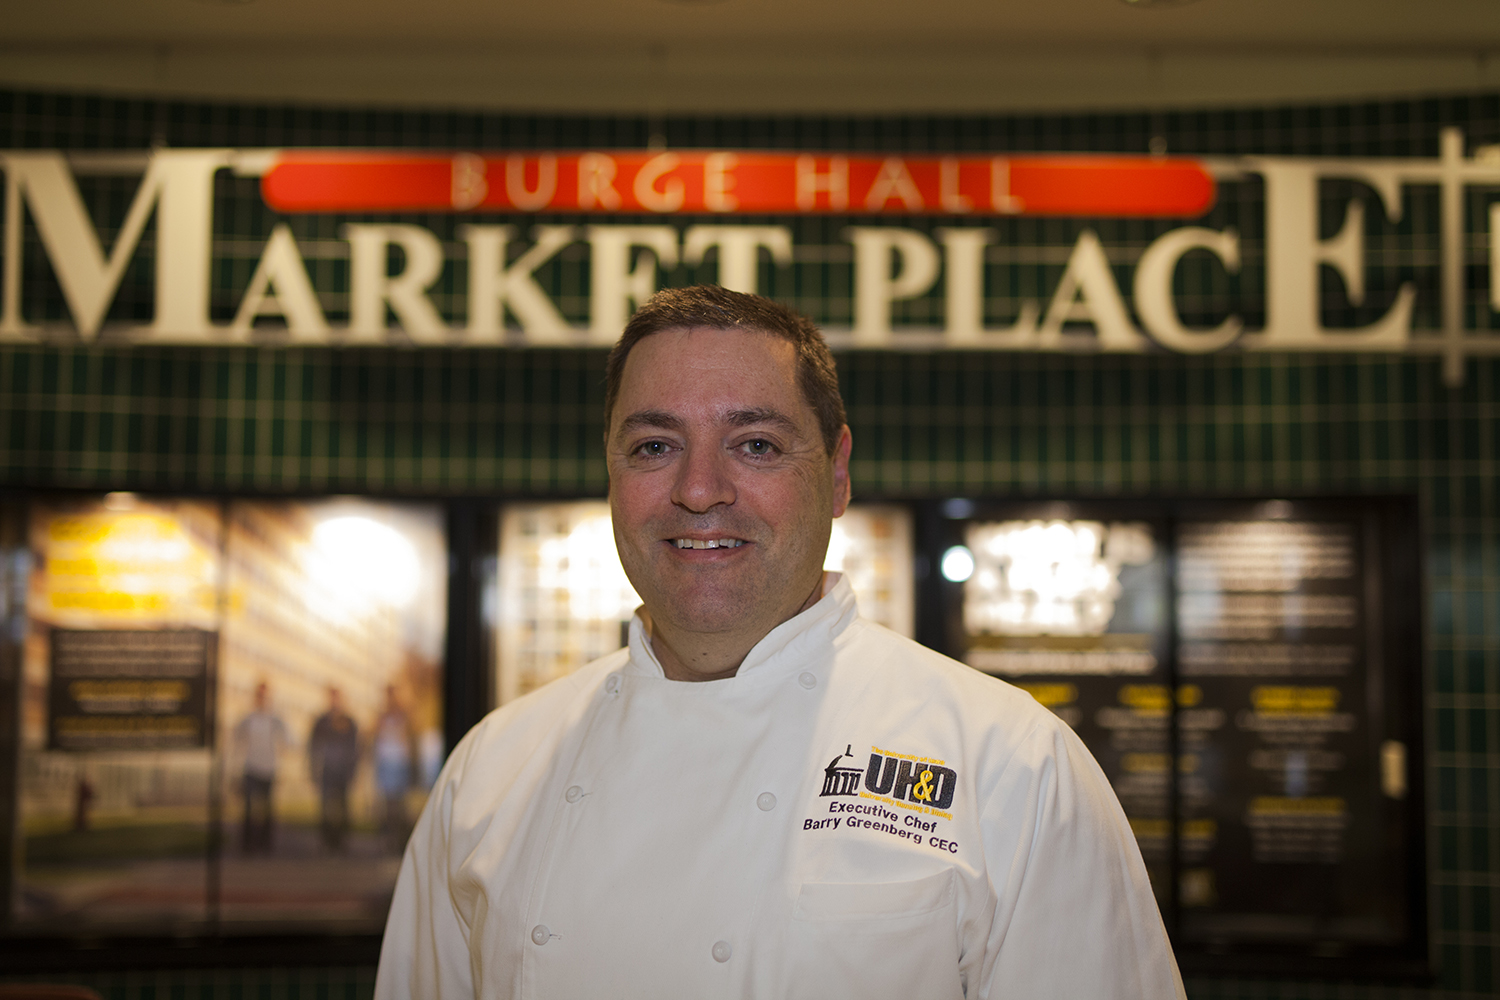 University of Iowa Dining Hall Chef Barry Greenberg poses for a portrait on Monday, Nov. 12, 2018. Barry just won Minor's Flavor Contest and has been rewarded with a trip to France, and $10,000.